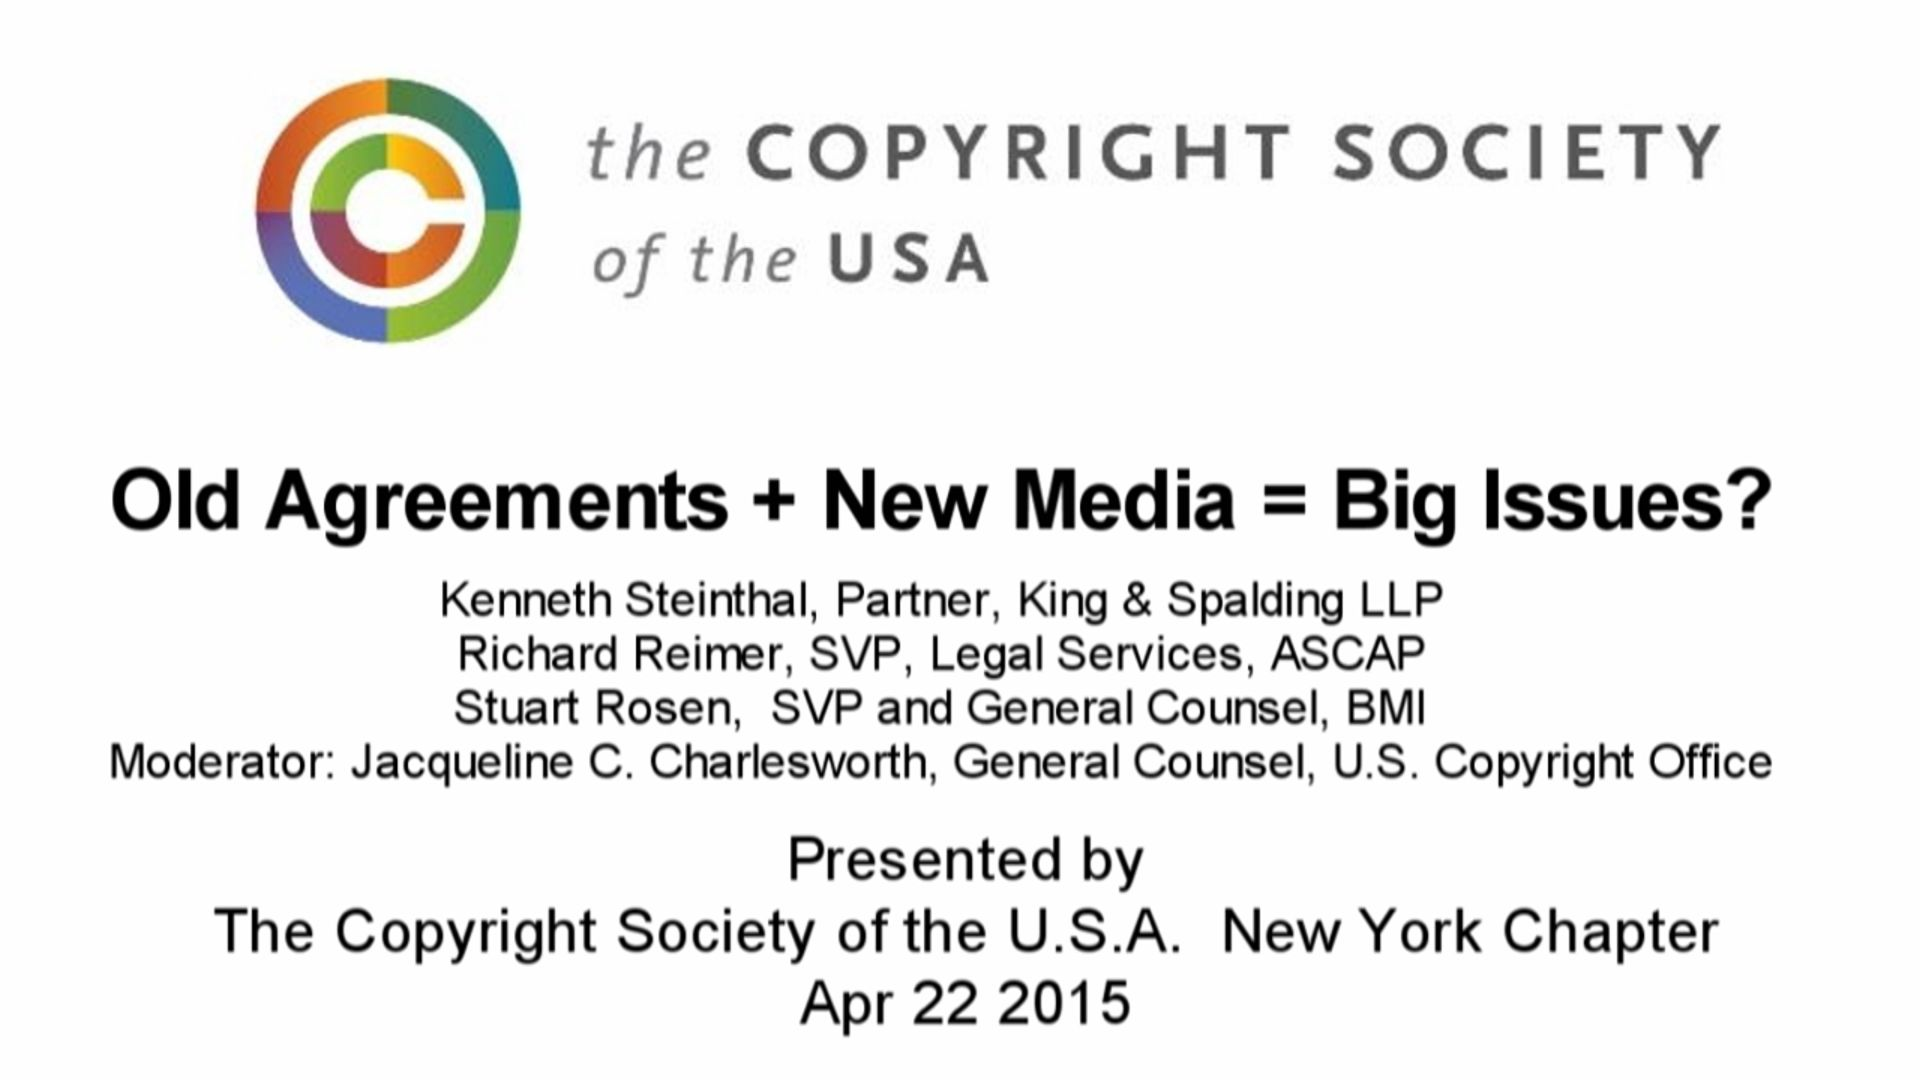 CSUSA - Old Agreements + New Media = Big Issues? -  April 22 2015